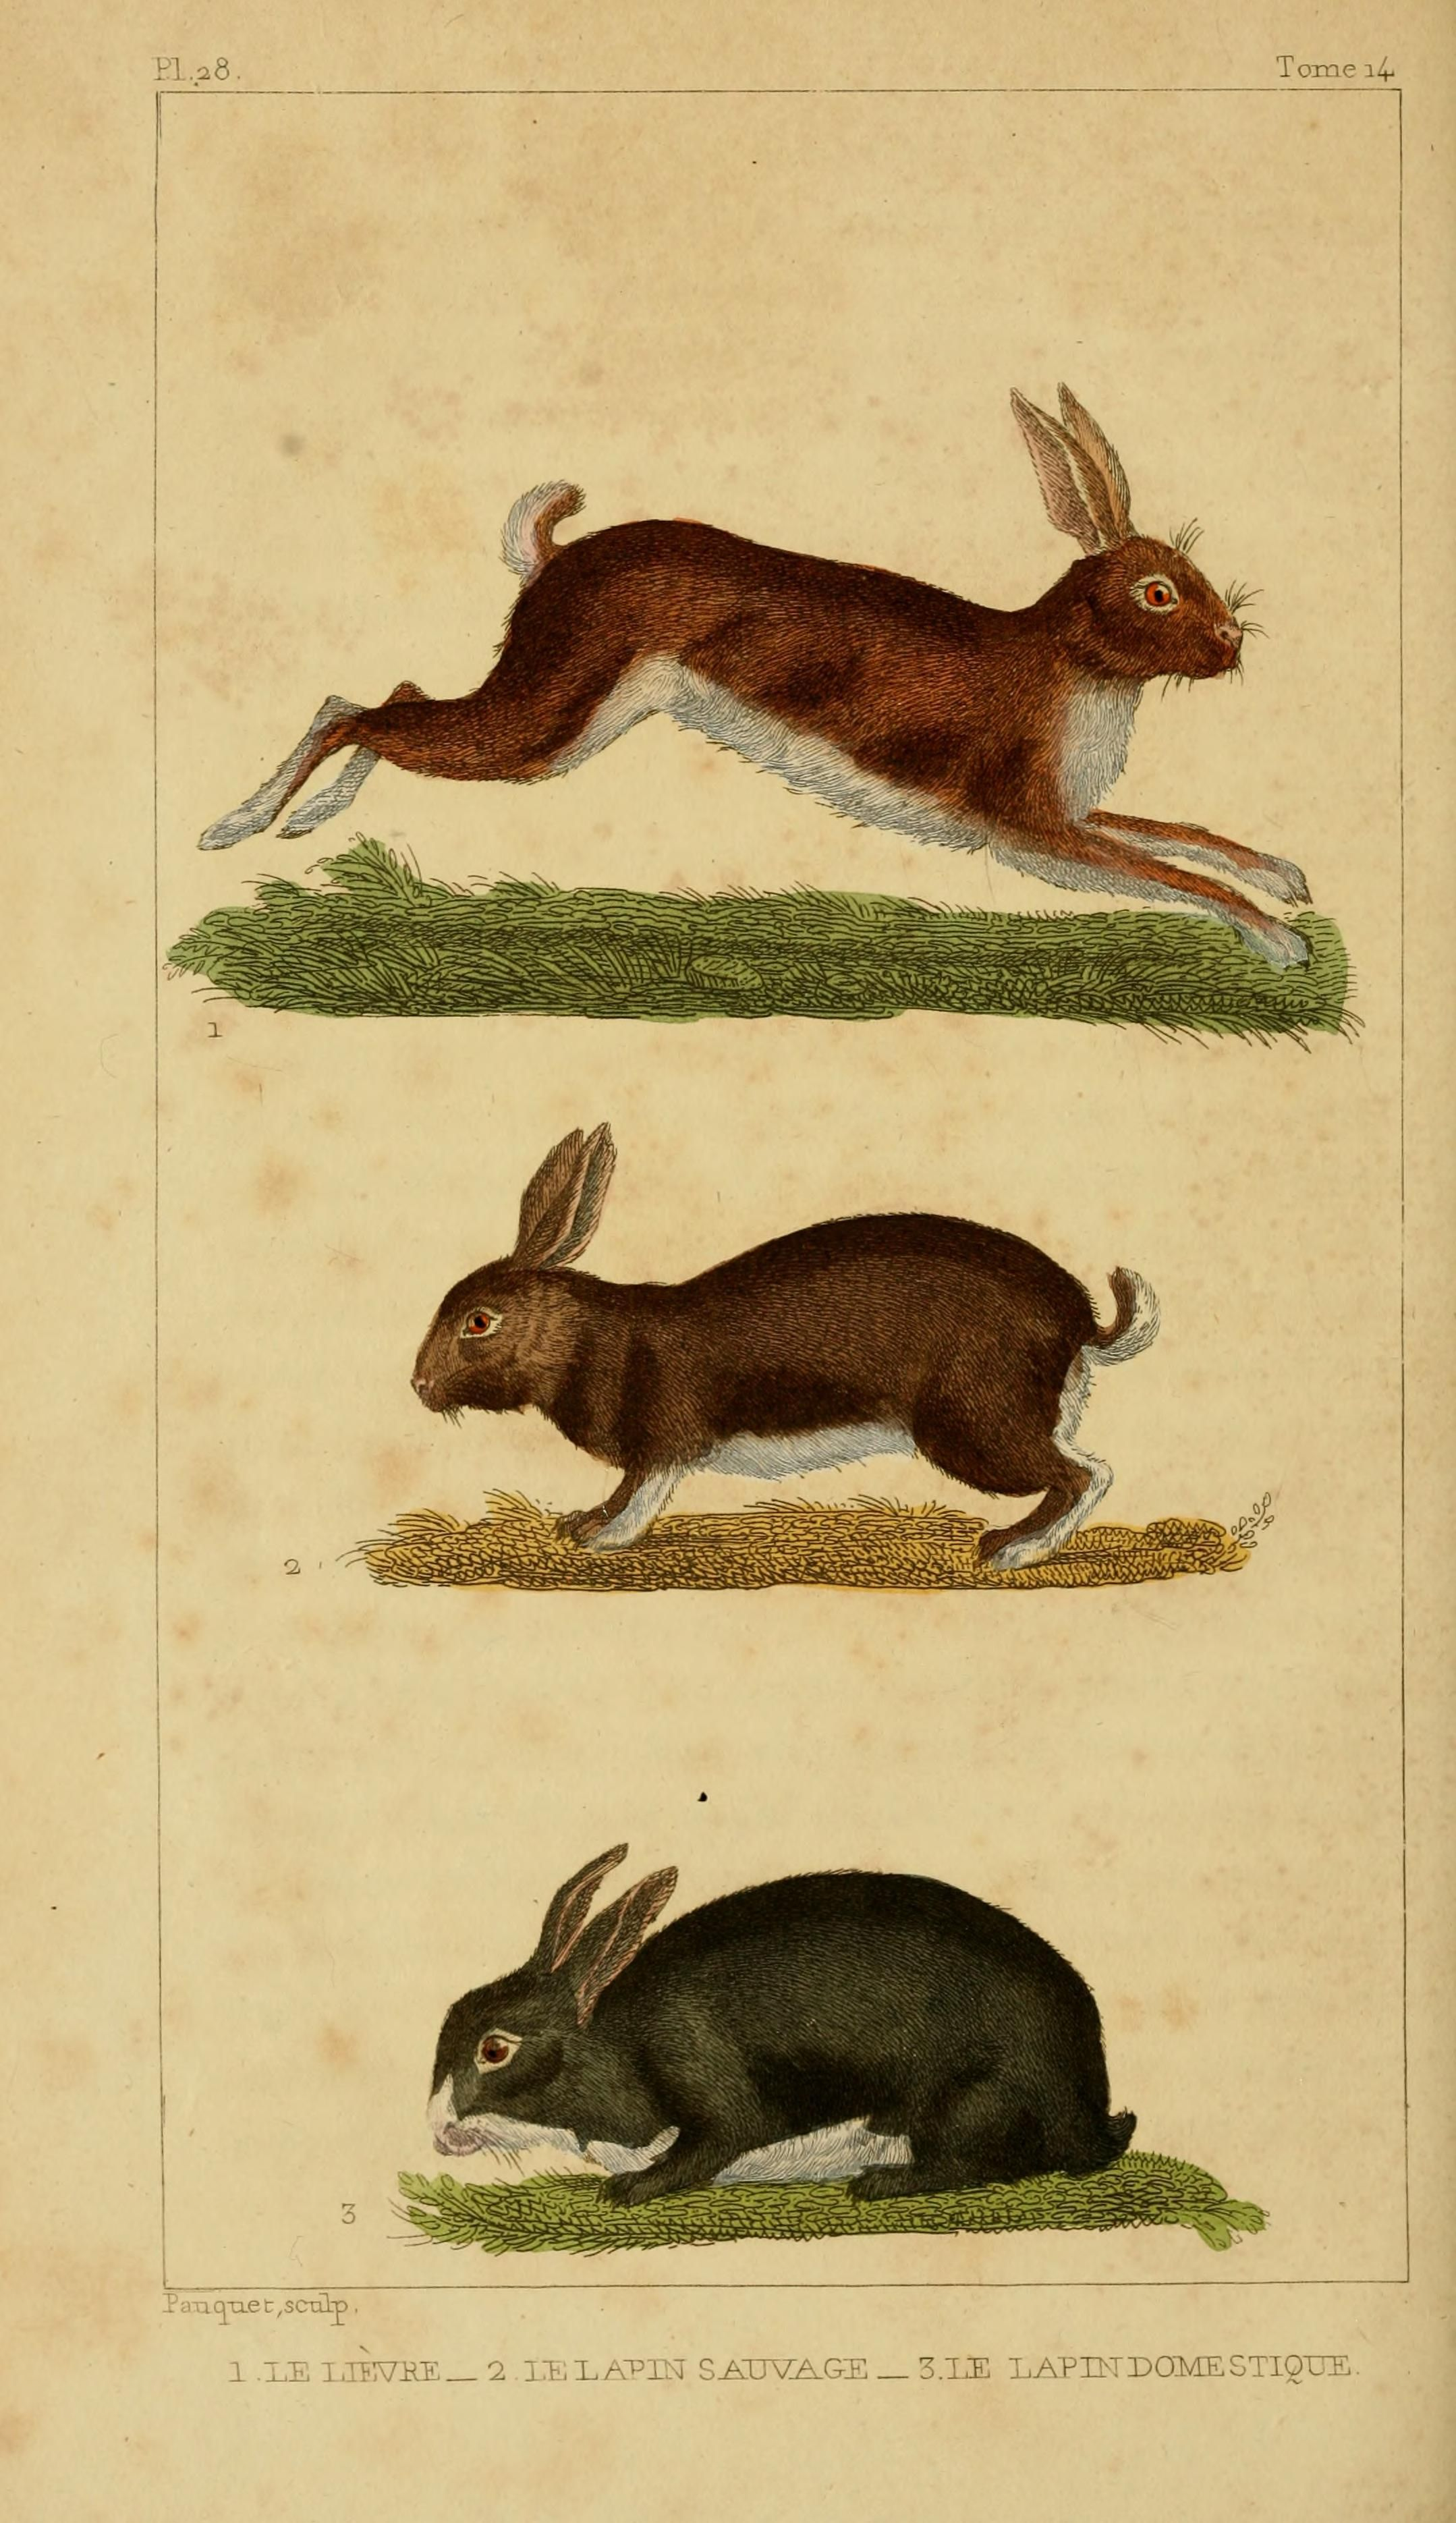 The Hare, the wild rabbit and the domestic rabbit. Le Lièvre & Le Lapin Sauvage & Le Lapin Domestique, (1830)